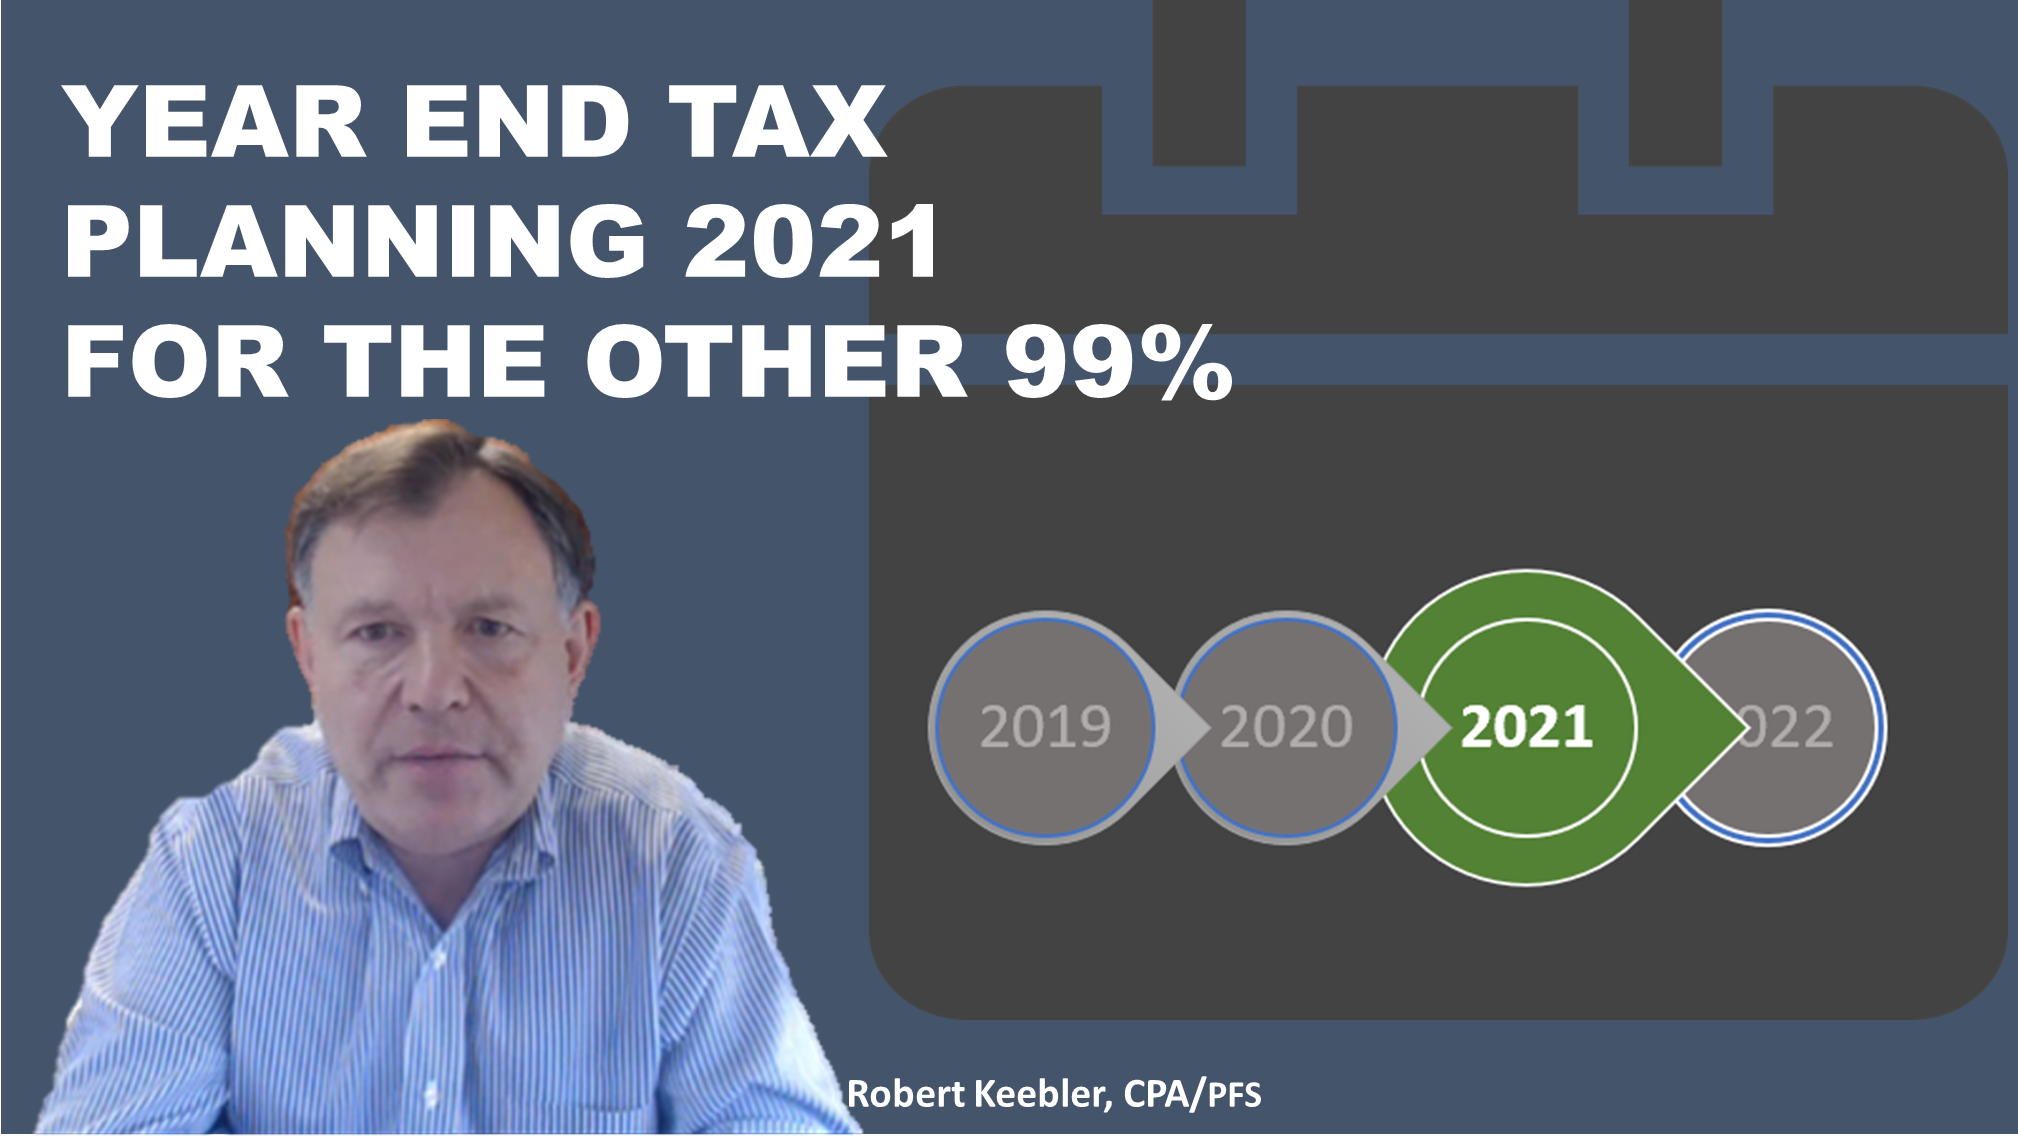 Year End Tax Planning For The Other 99%